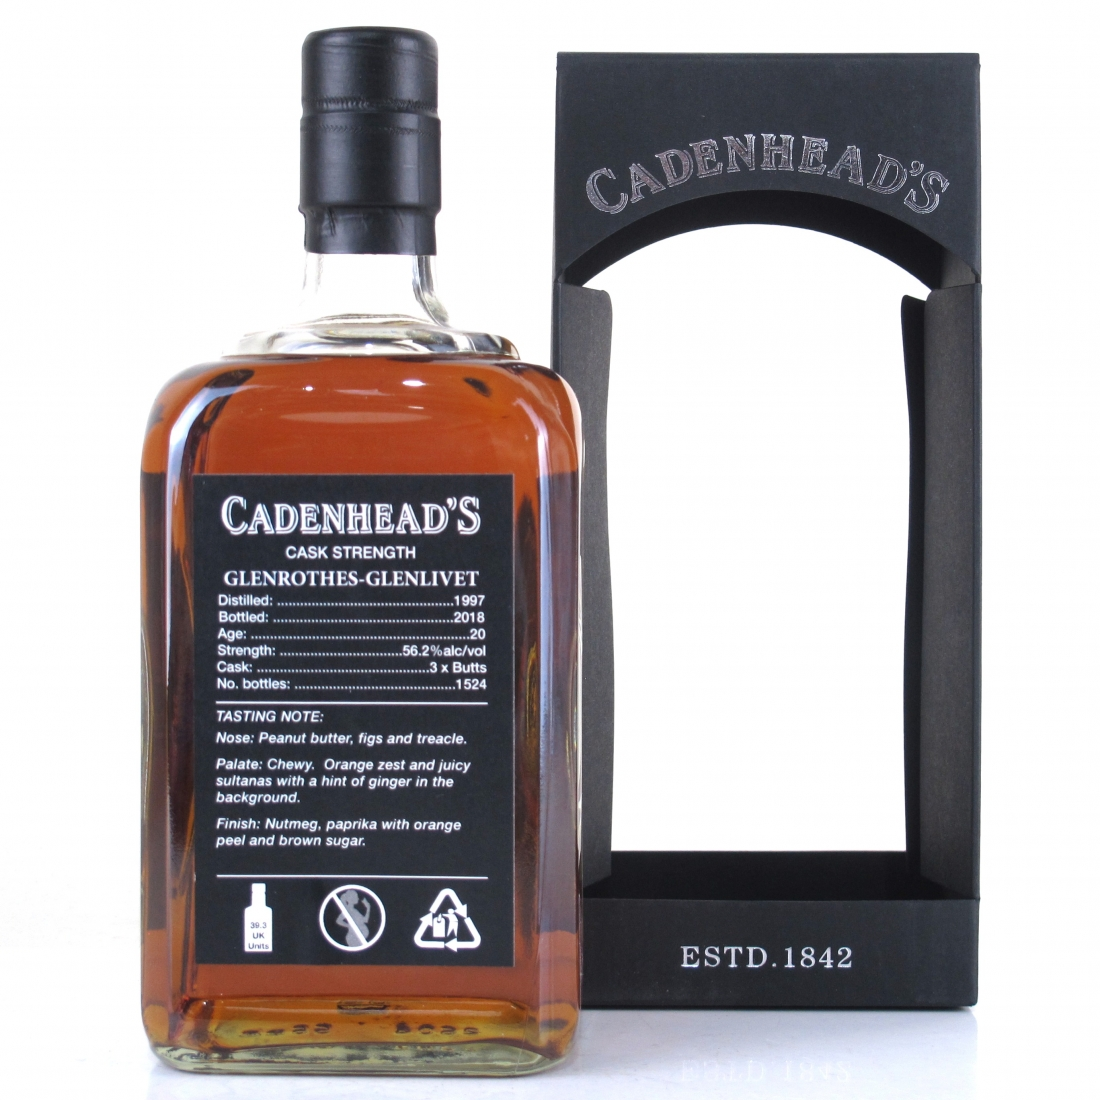 Glenrothes 1997 Cadenhead's 20 Year Old